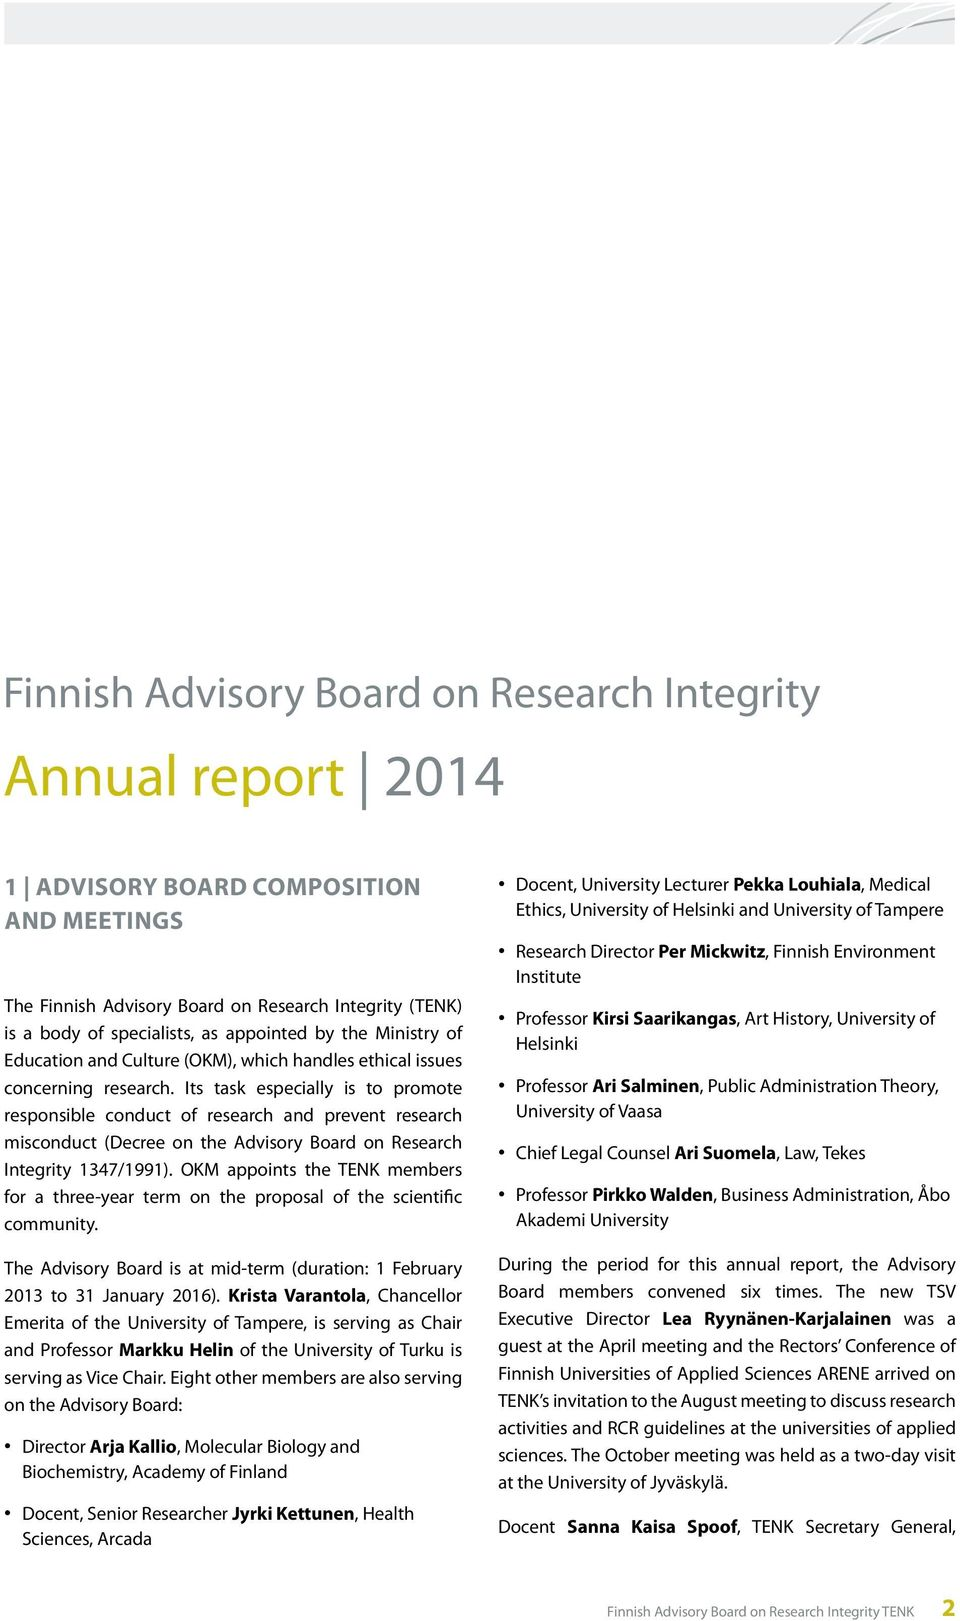 Its task especially is to promote responsible conduct of research and prevent research misconduct (Decree on the Advisory Board on Research Integrity 1347/1991).